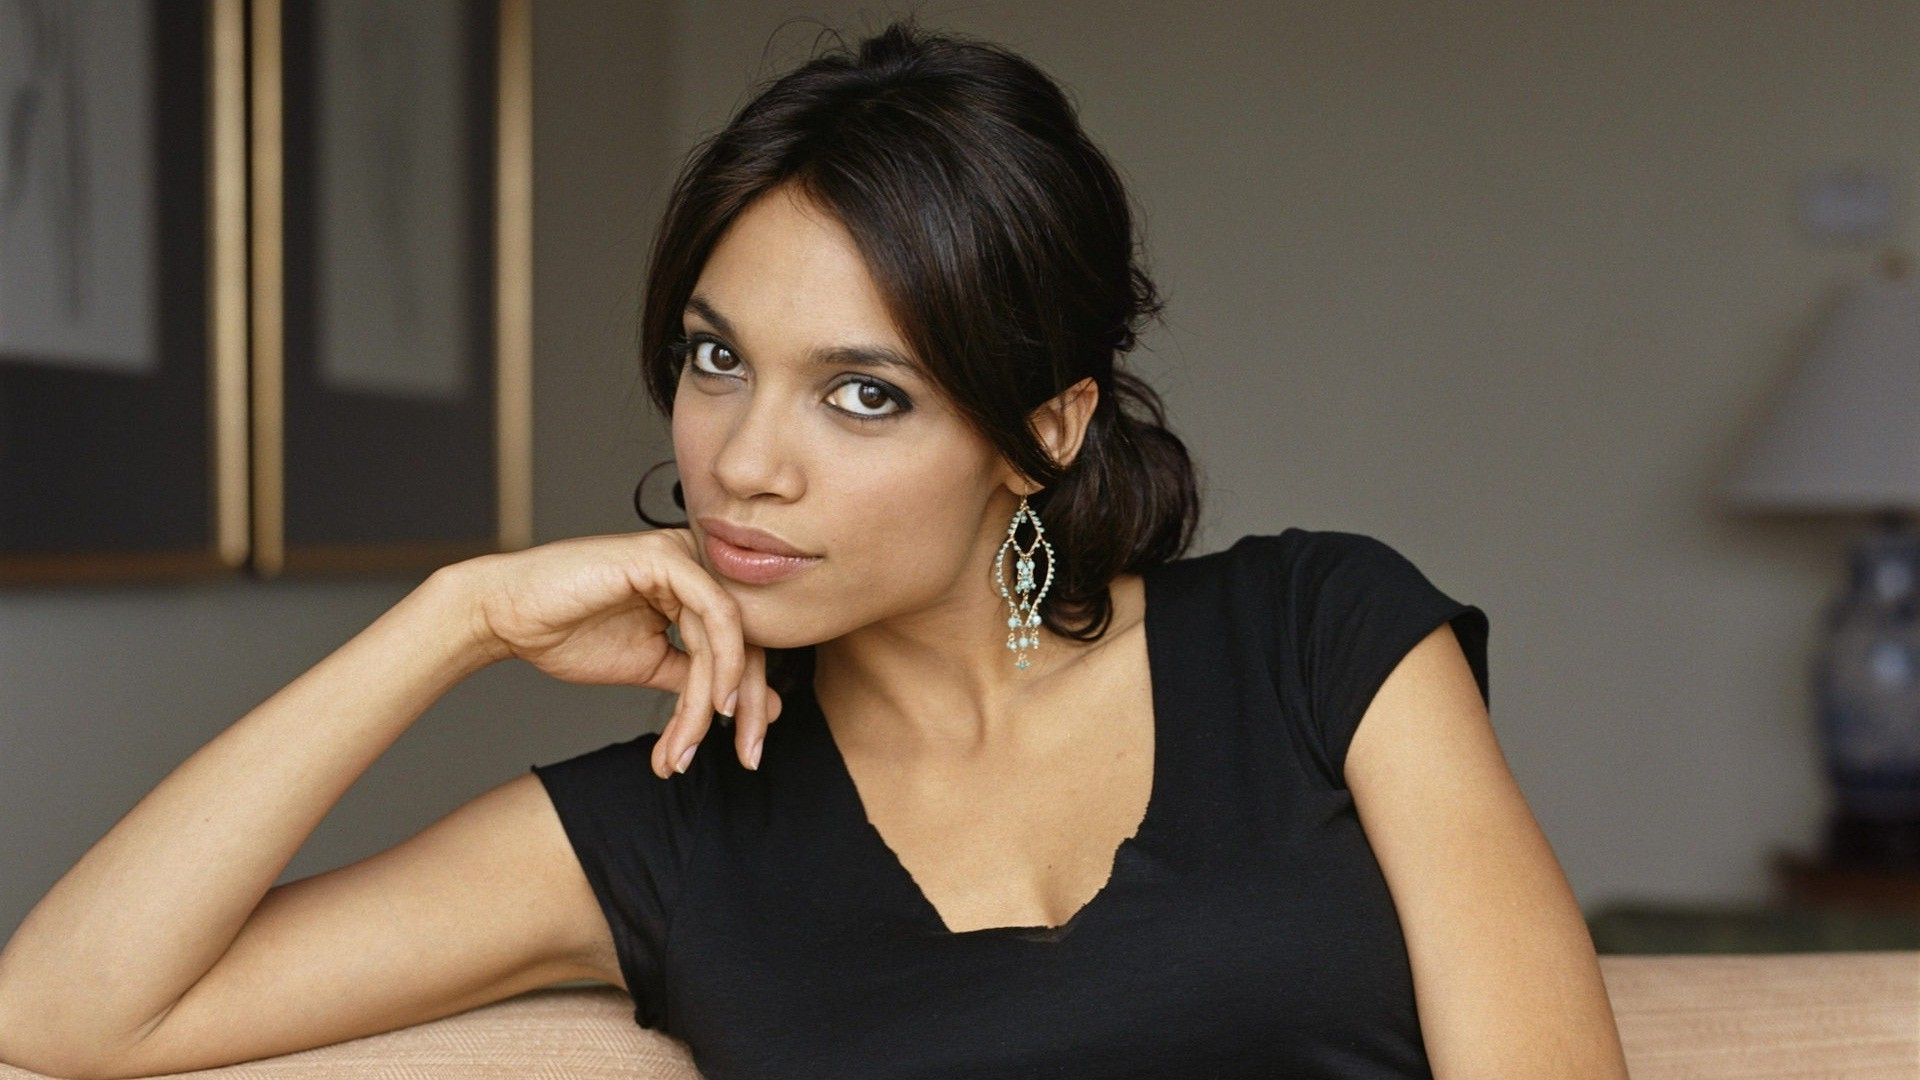 Rosario Dawson Wallpapers HQ